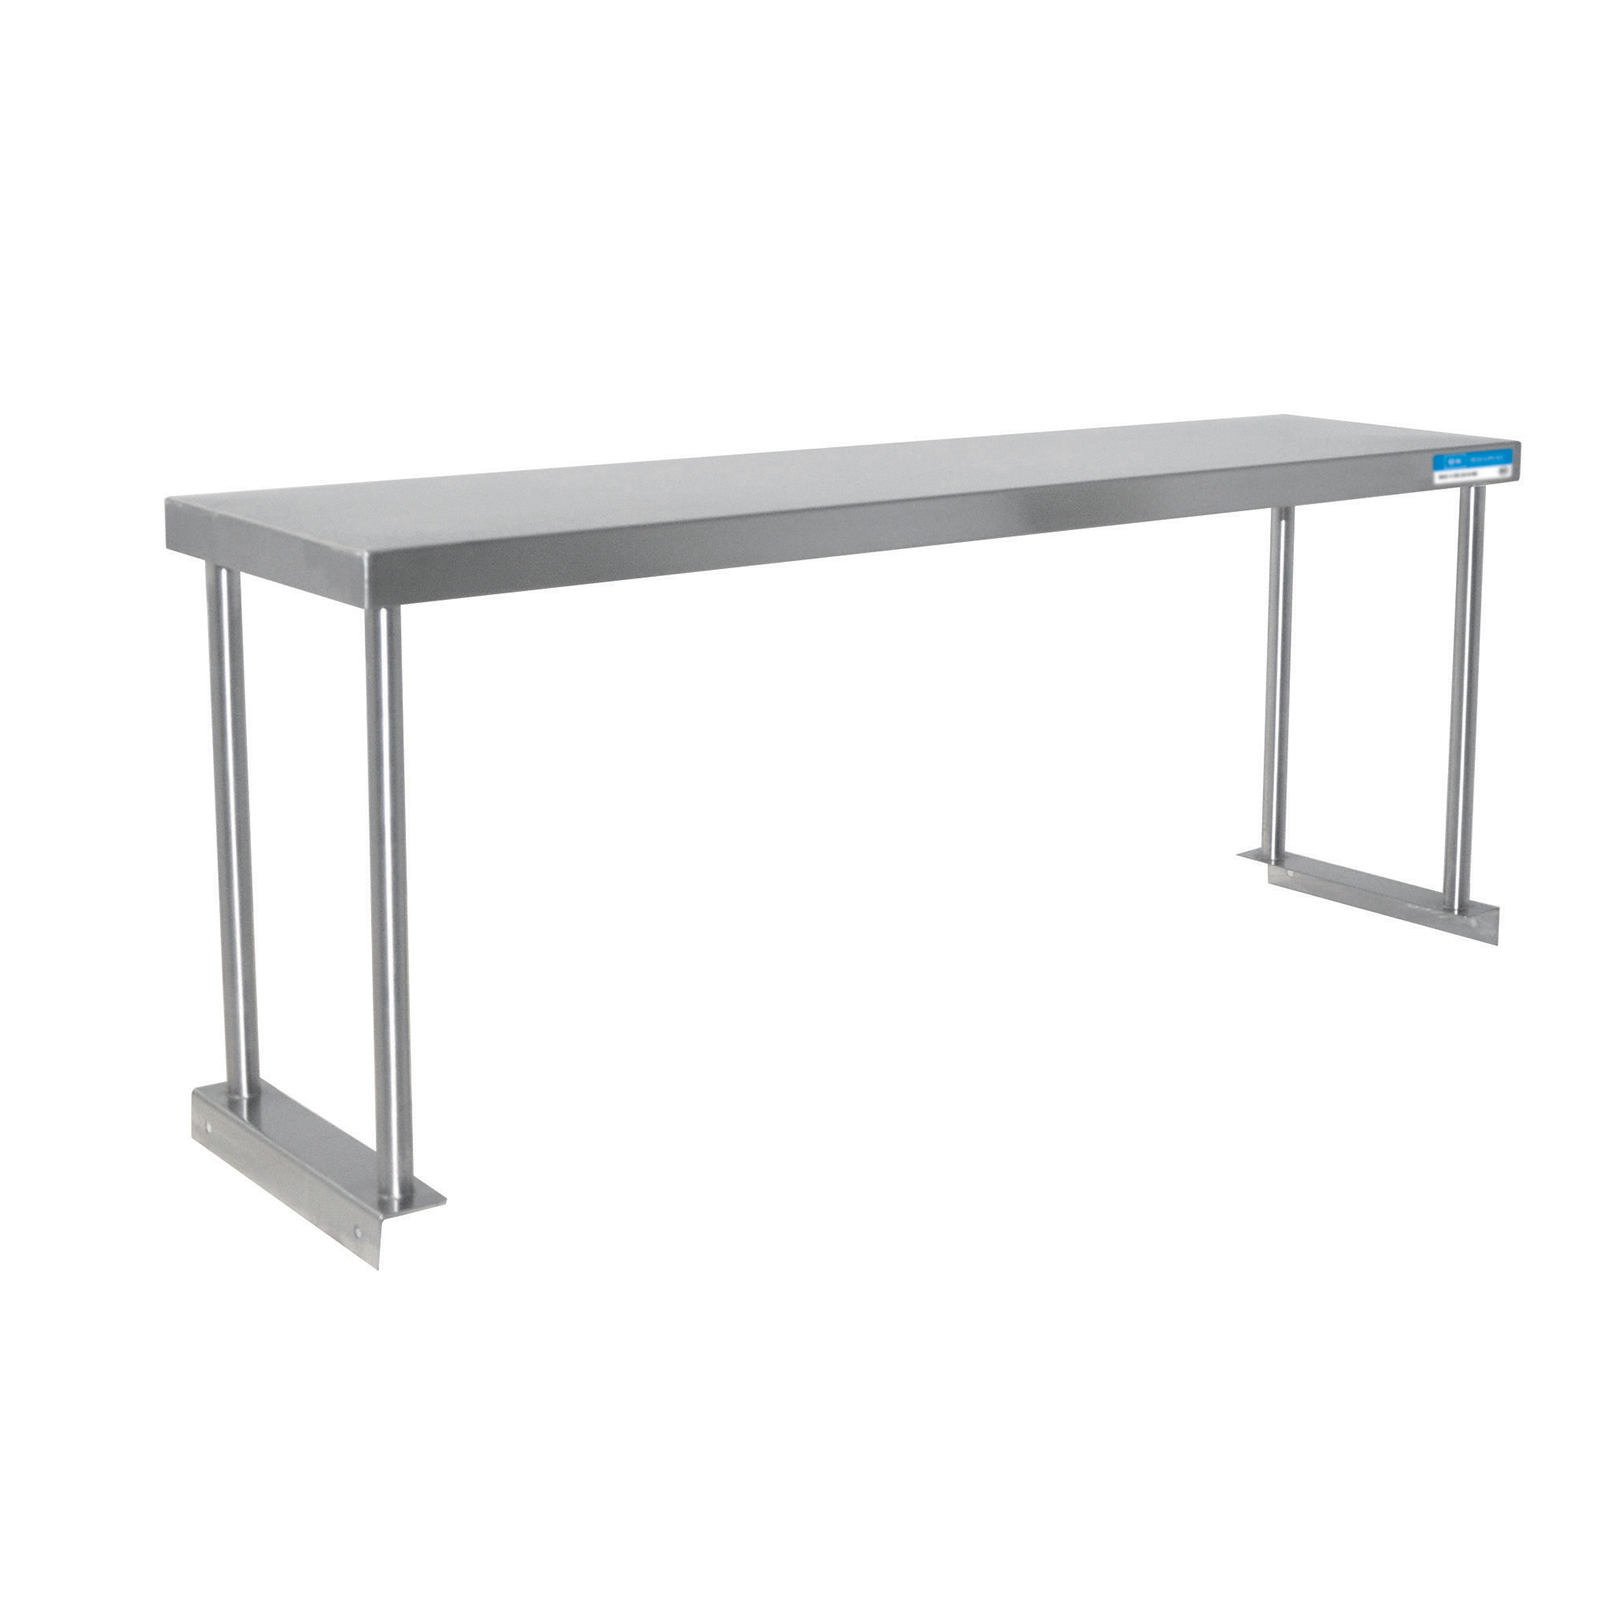 BK Resources BK-OSS-1272 overshelf, table-mounted